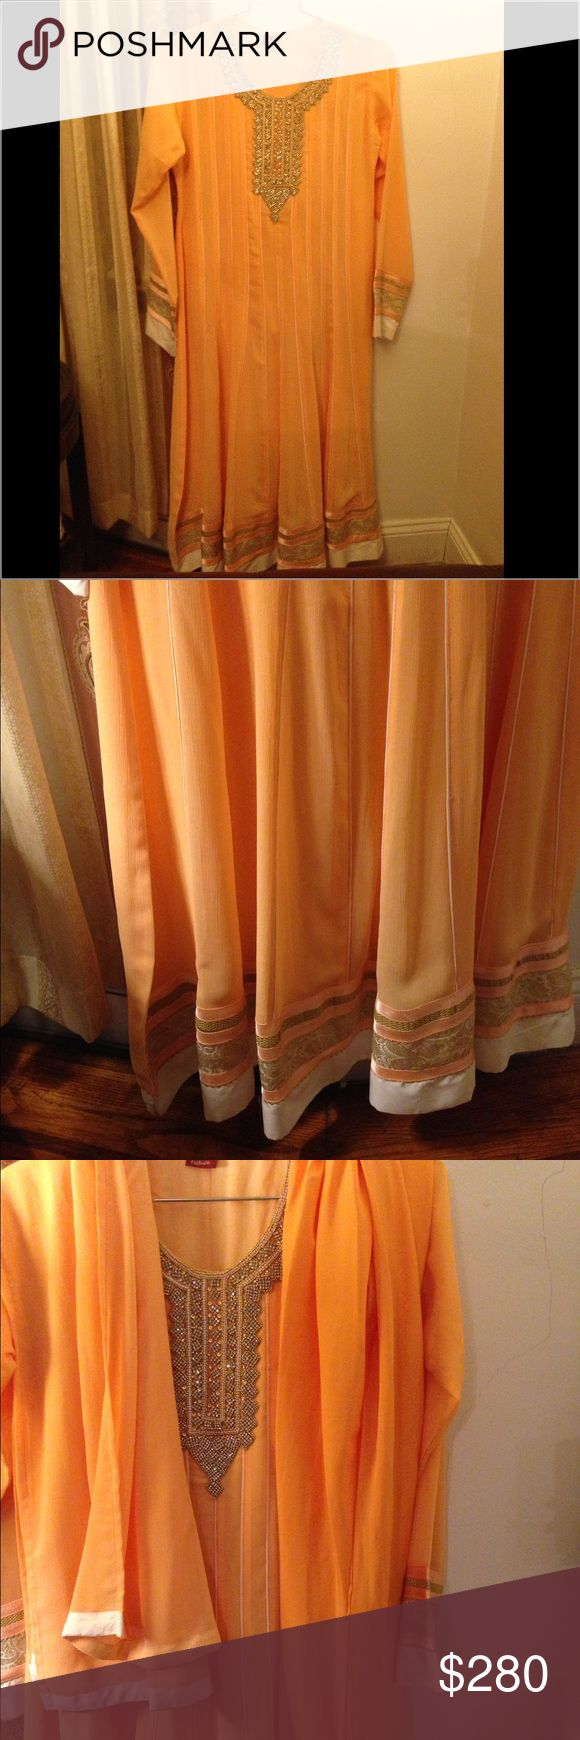 ☀️SALE☀️Indian Pakistani shalwar kameez dress Pakistani Indian party wedding occasion dress. Color is a light true peach. Looks a little orange in photos (last photo is closer to true color) Elegant and beautiful piece. Bollywood  Worn once. Practically new. Beautiful peach dress with detailed sleeves and design and bottom. Stone work on chest. Bought for $380. Roughly size L to XL.  3rd photo left dupatta/scarf tight pants/chruidar   Measurement can be taken upon request. Please specify…